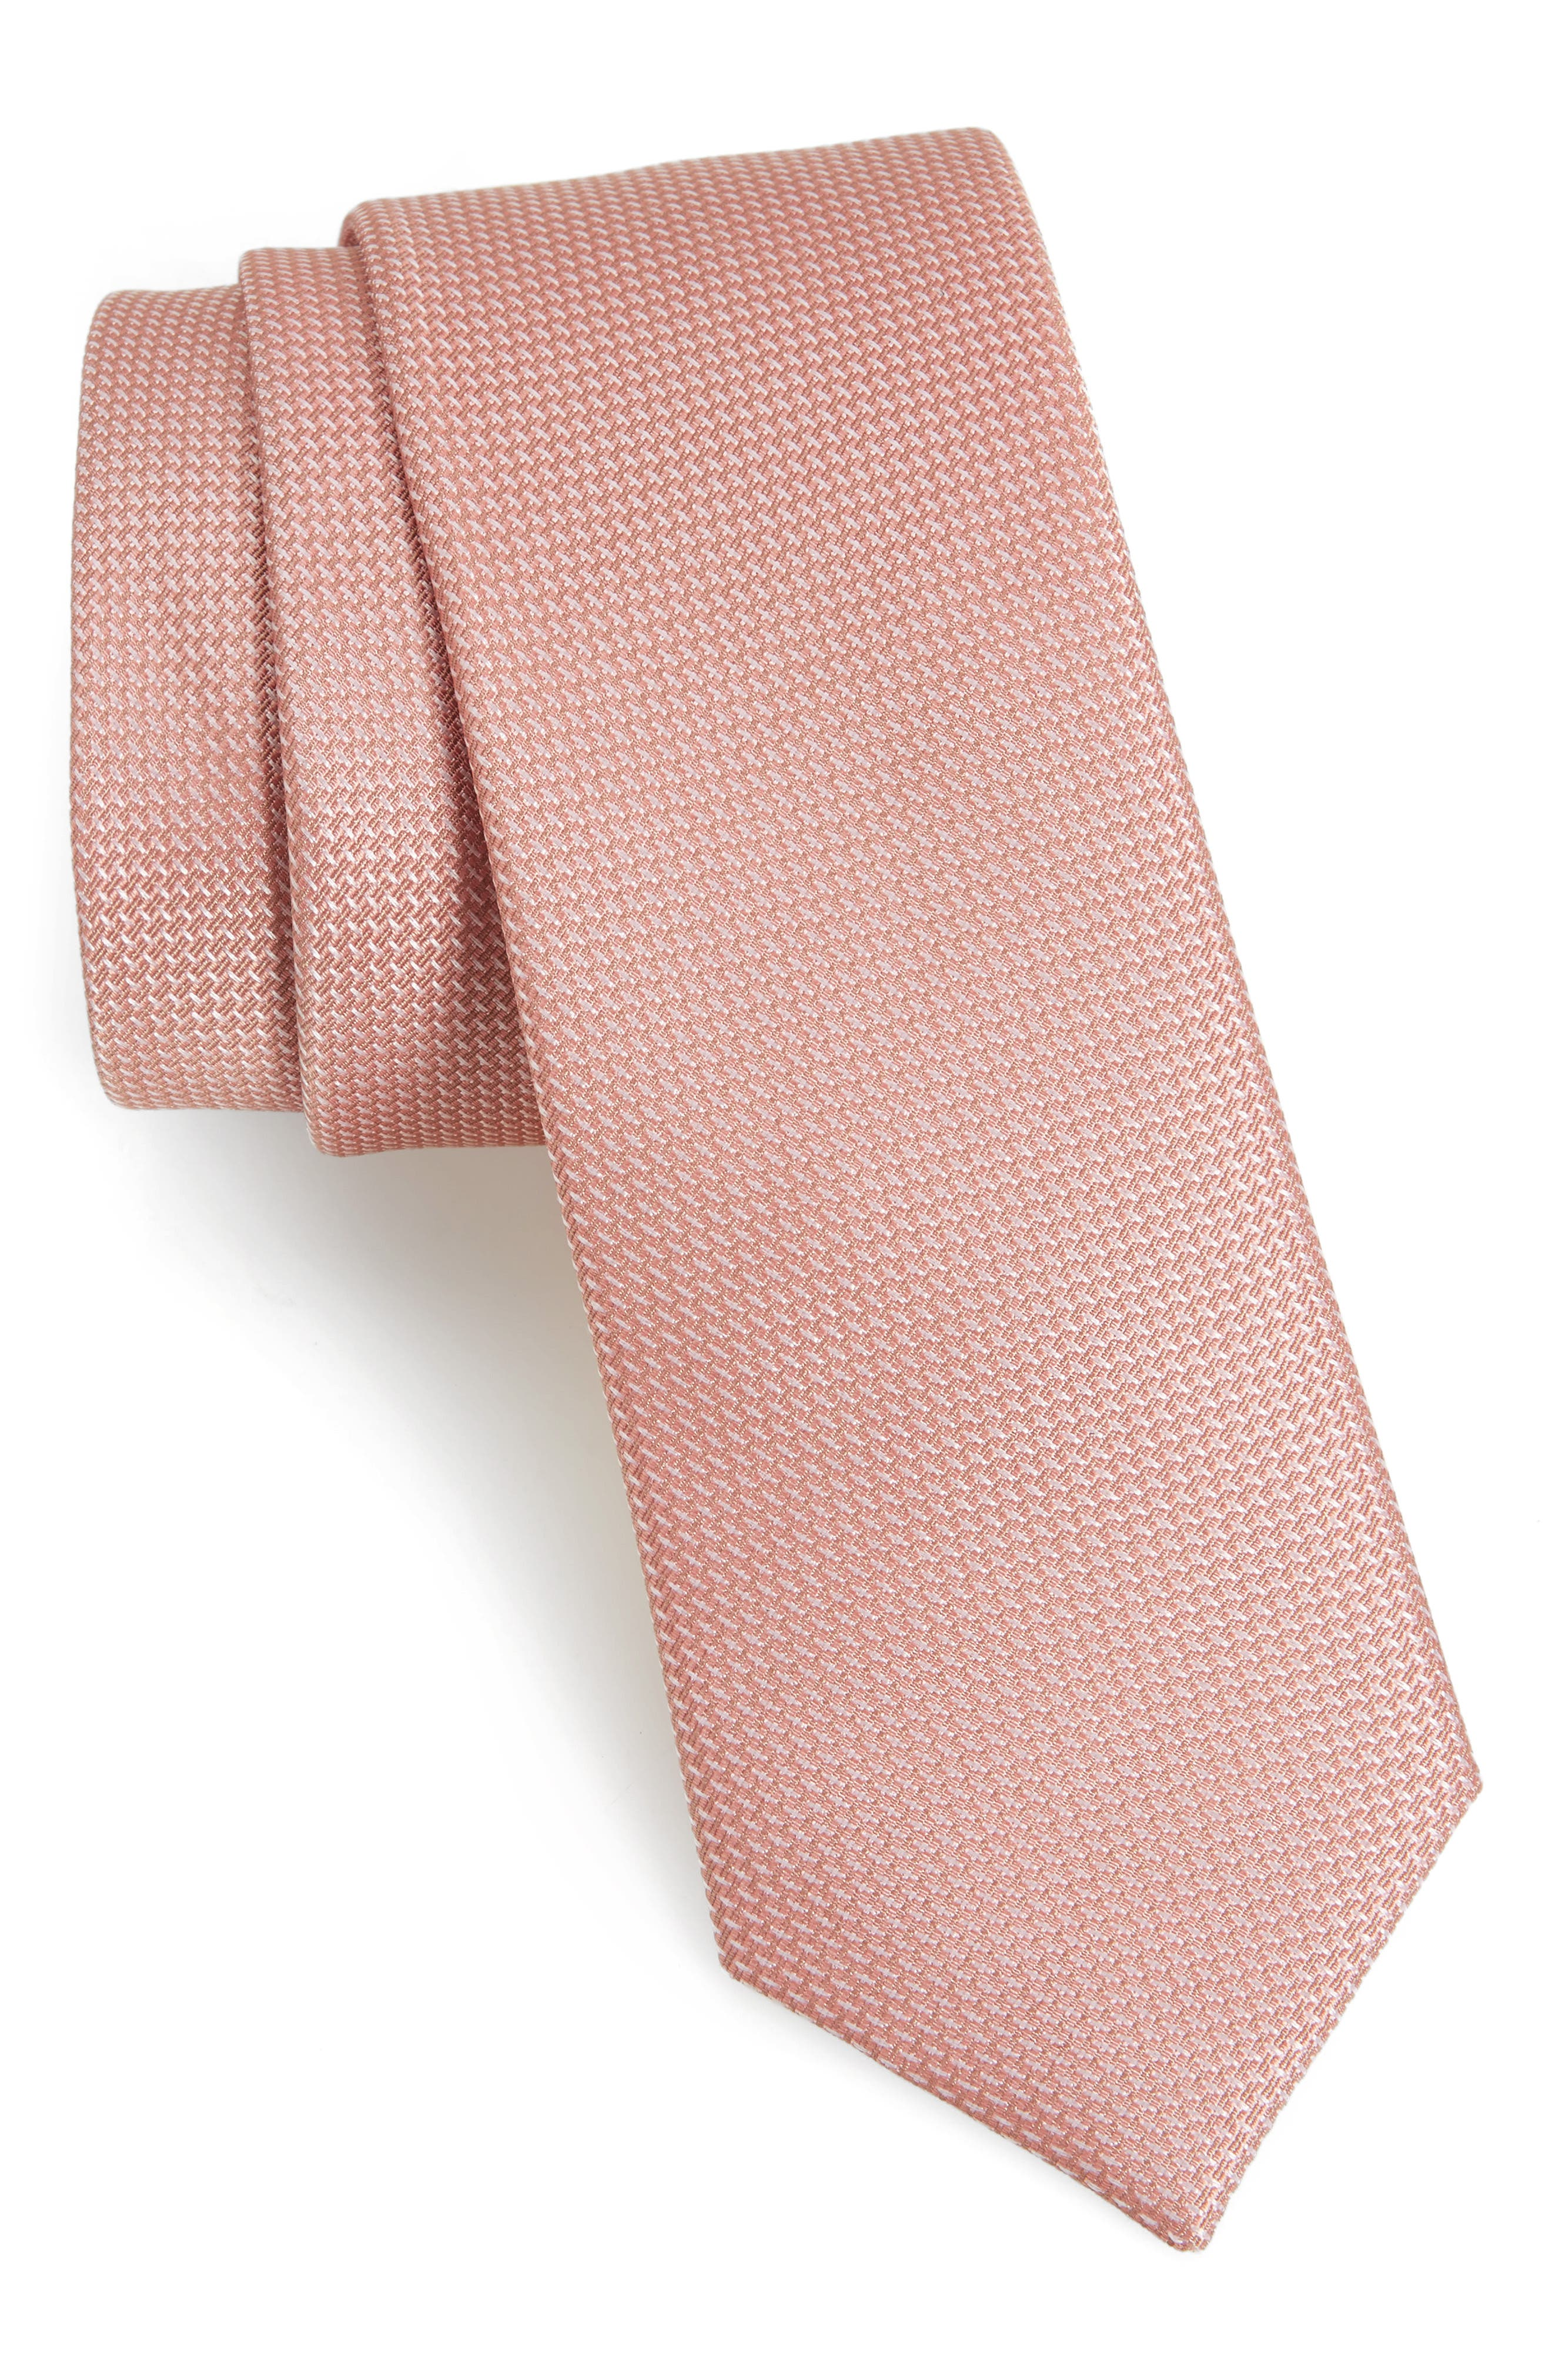 Union Solid Silk Tie,                         Main,                         color, Blush Pink